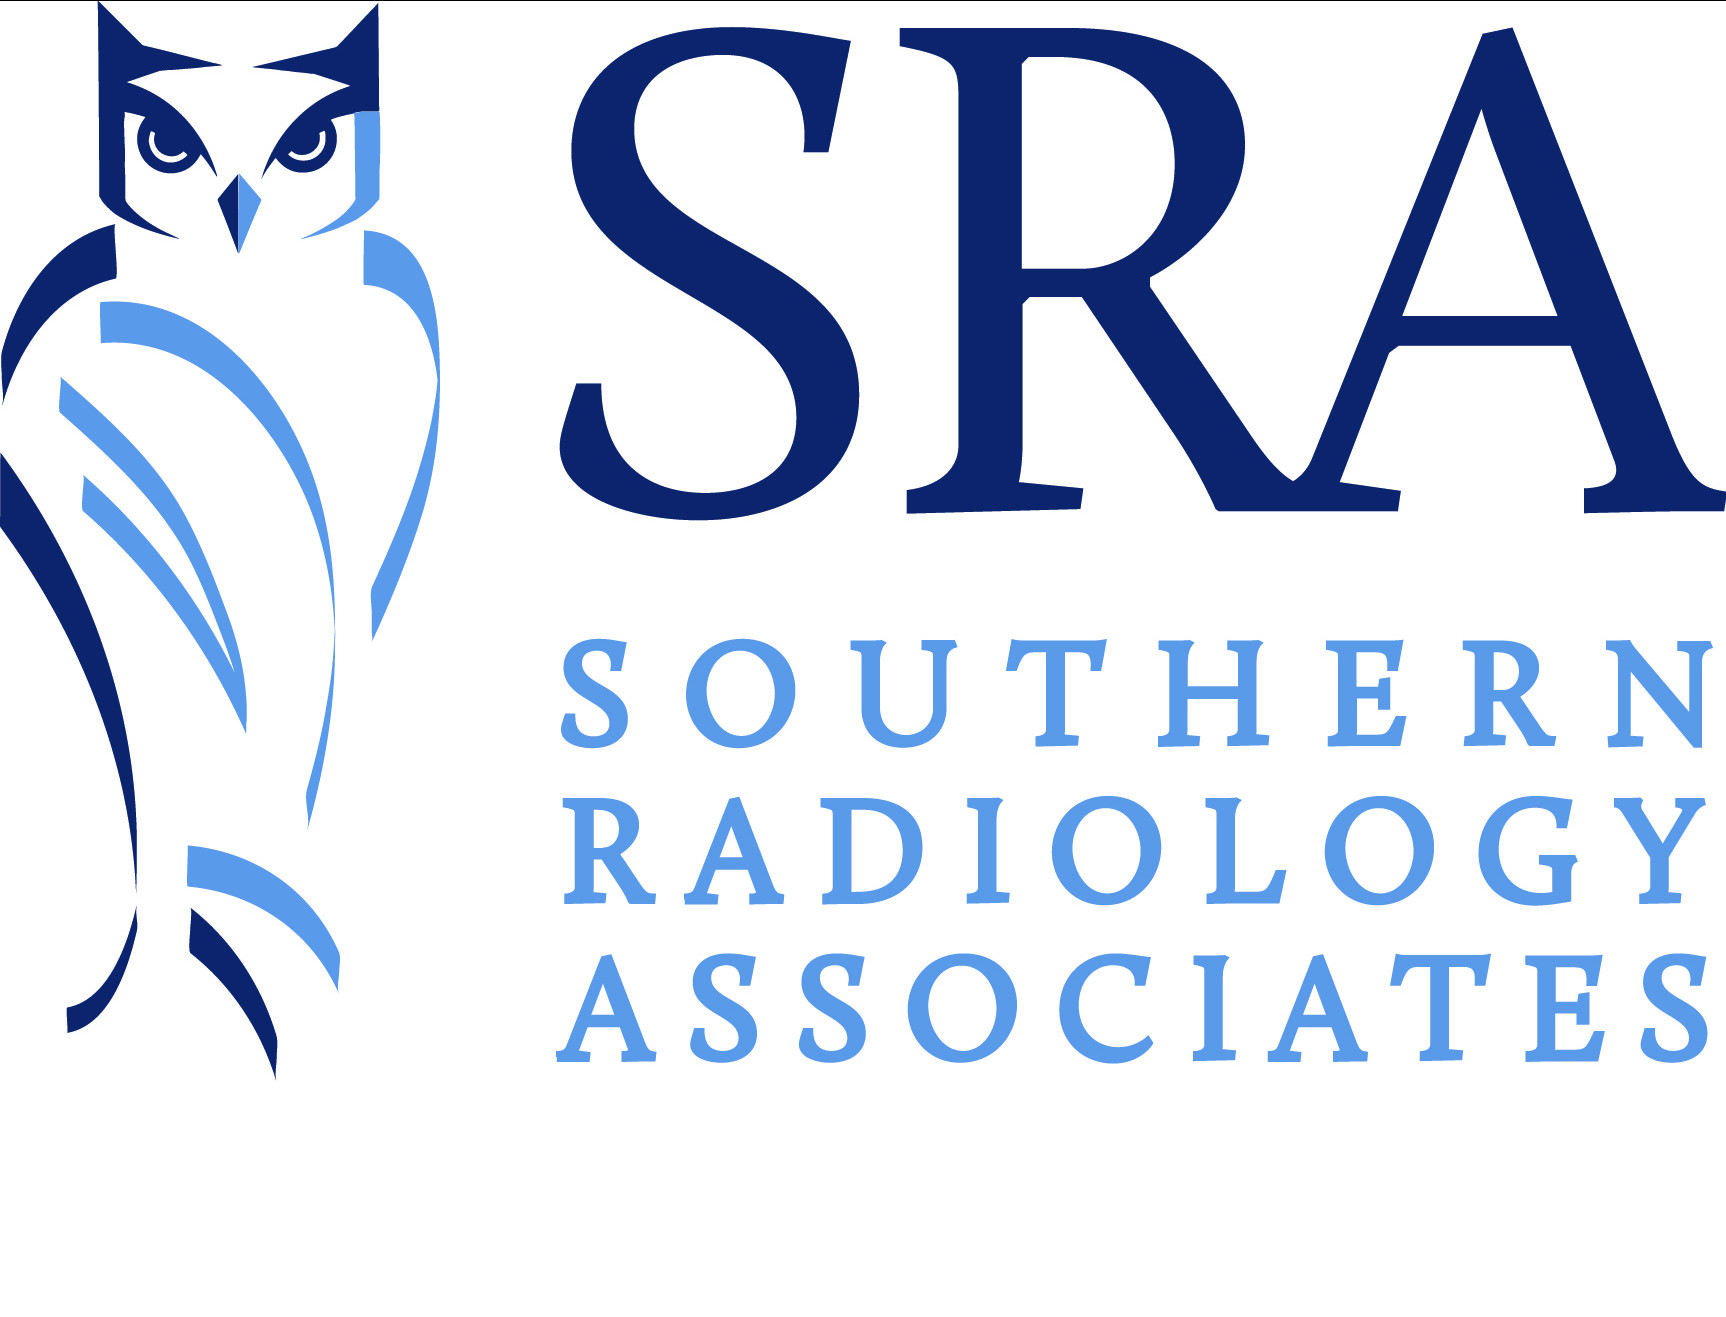 Southern Radiology Associates